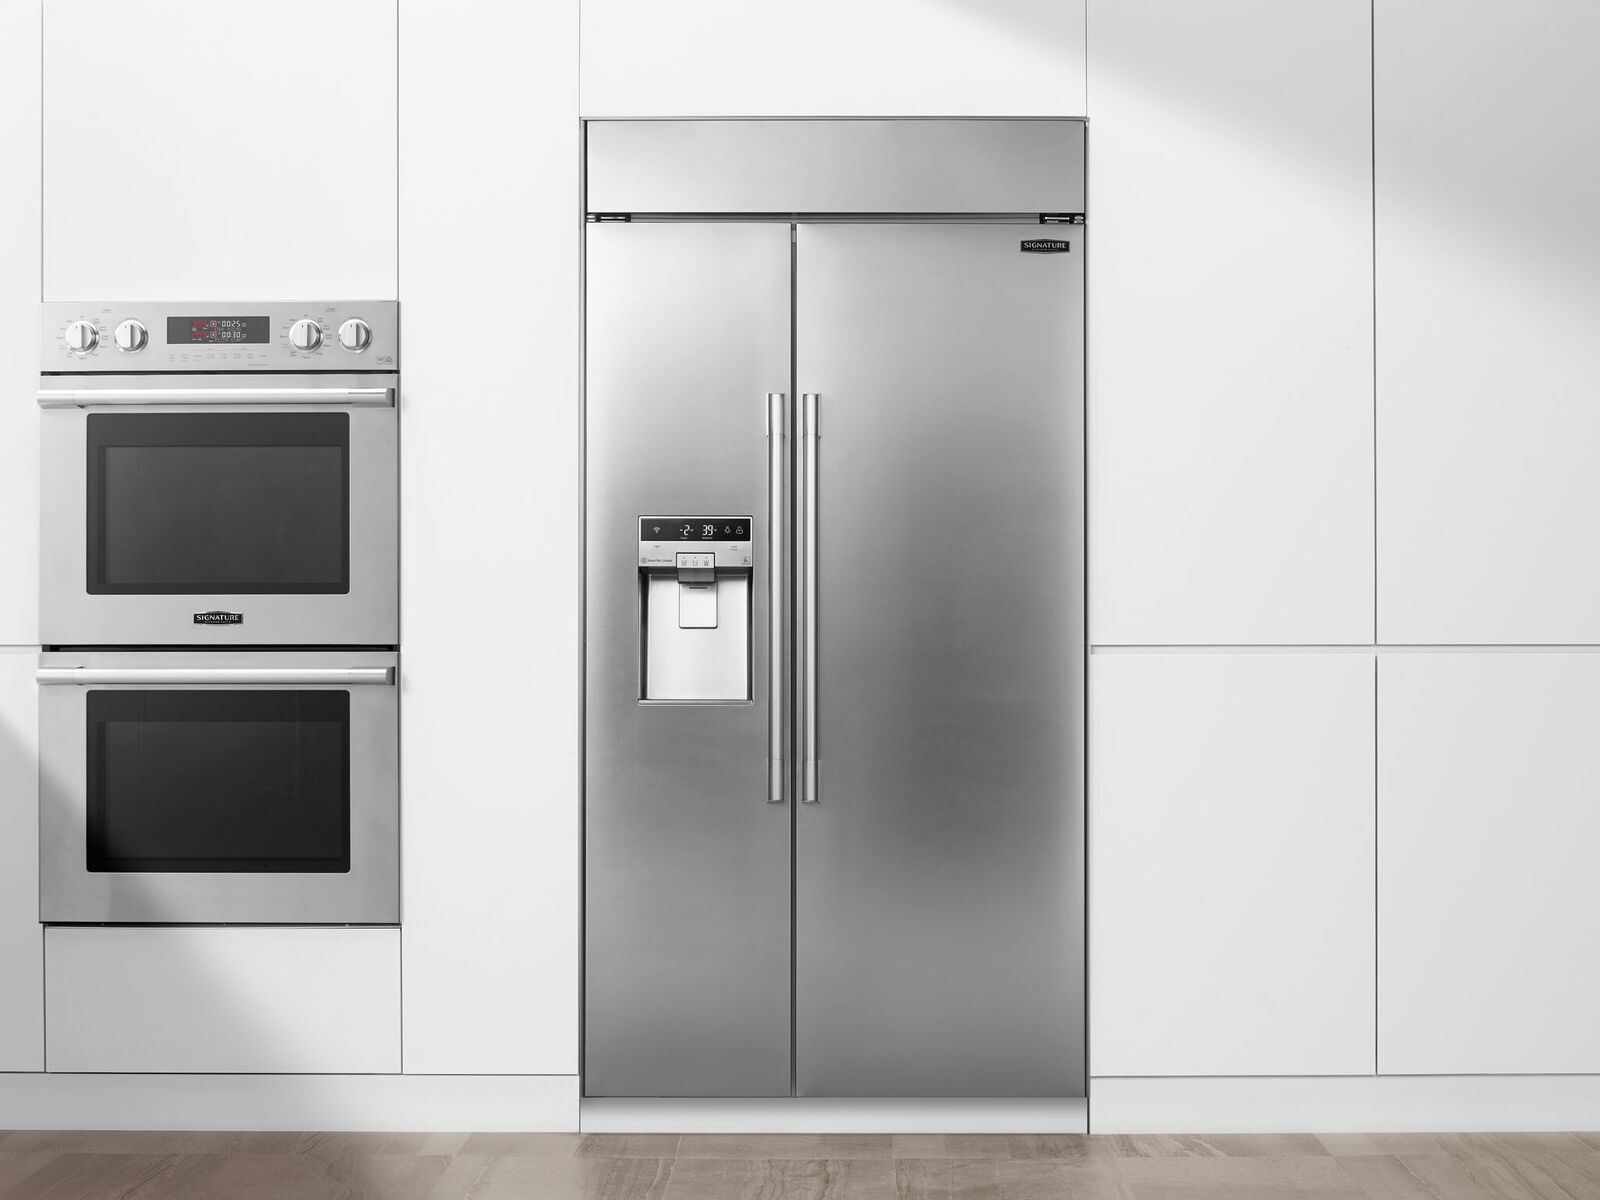 Signature Built-in Side-by-Side Refrigerator